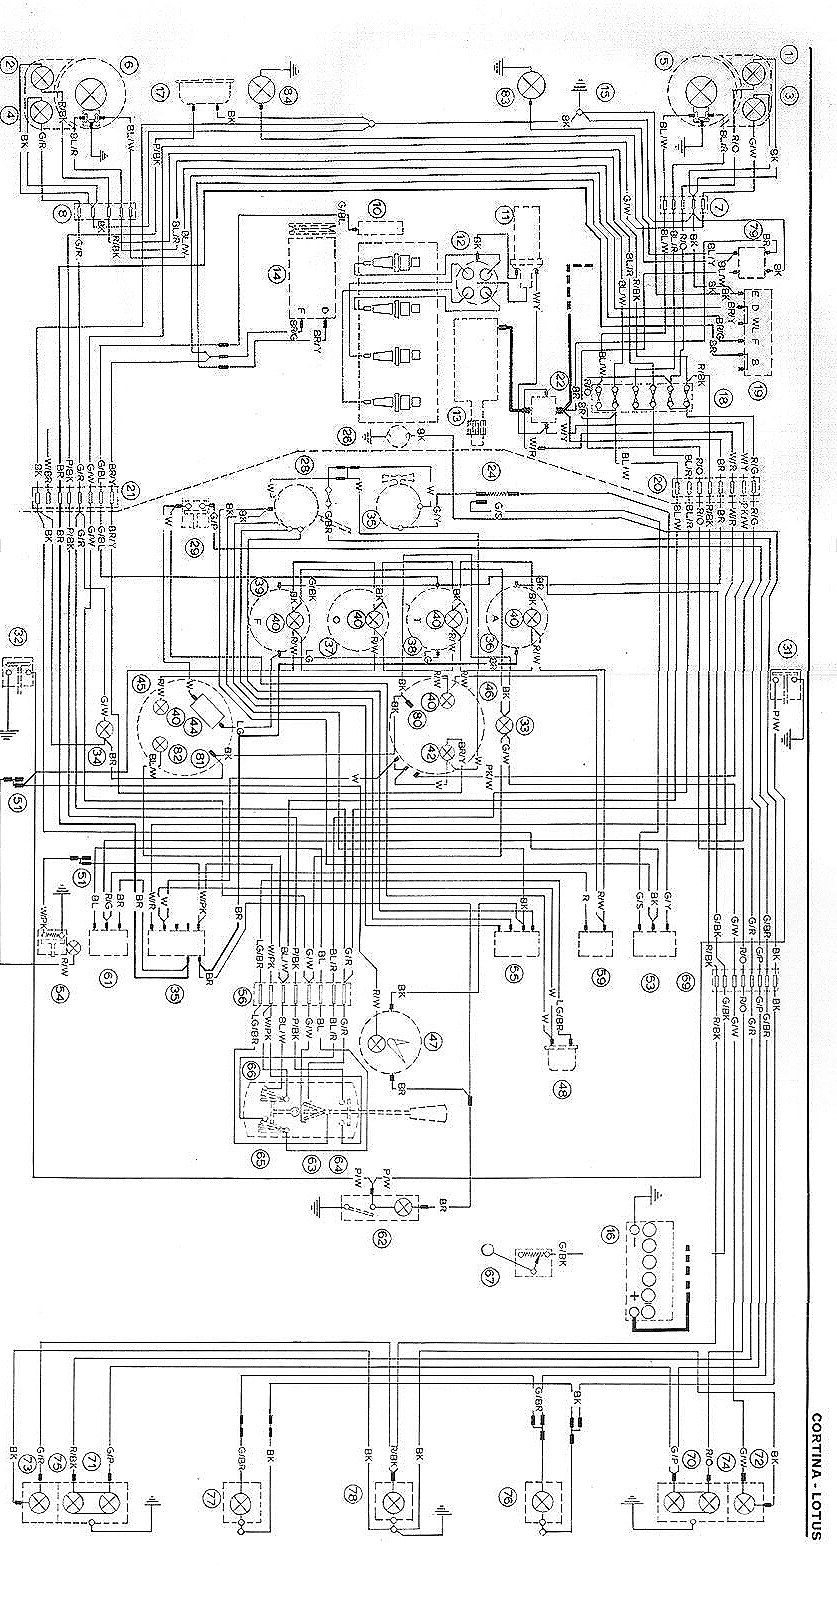 1967 camaro wiper diagram with Diagrams on 68 Firebird 350 Wiring Diagram further 1969 El Camino Fuel Tank besides Ignition Switch Wiring Diagram 3 69 Camaro besides Diagrams additionally 11390.